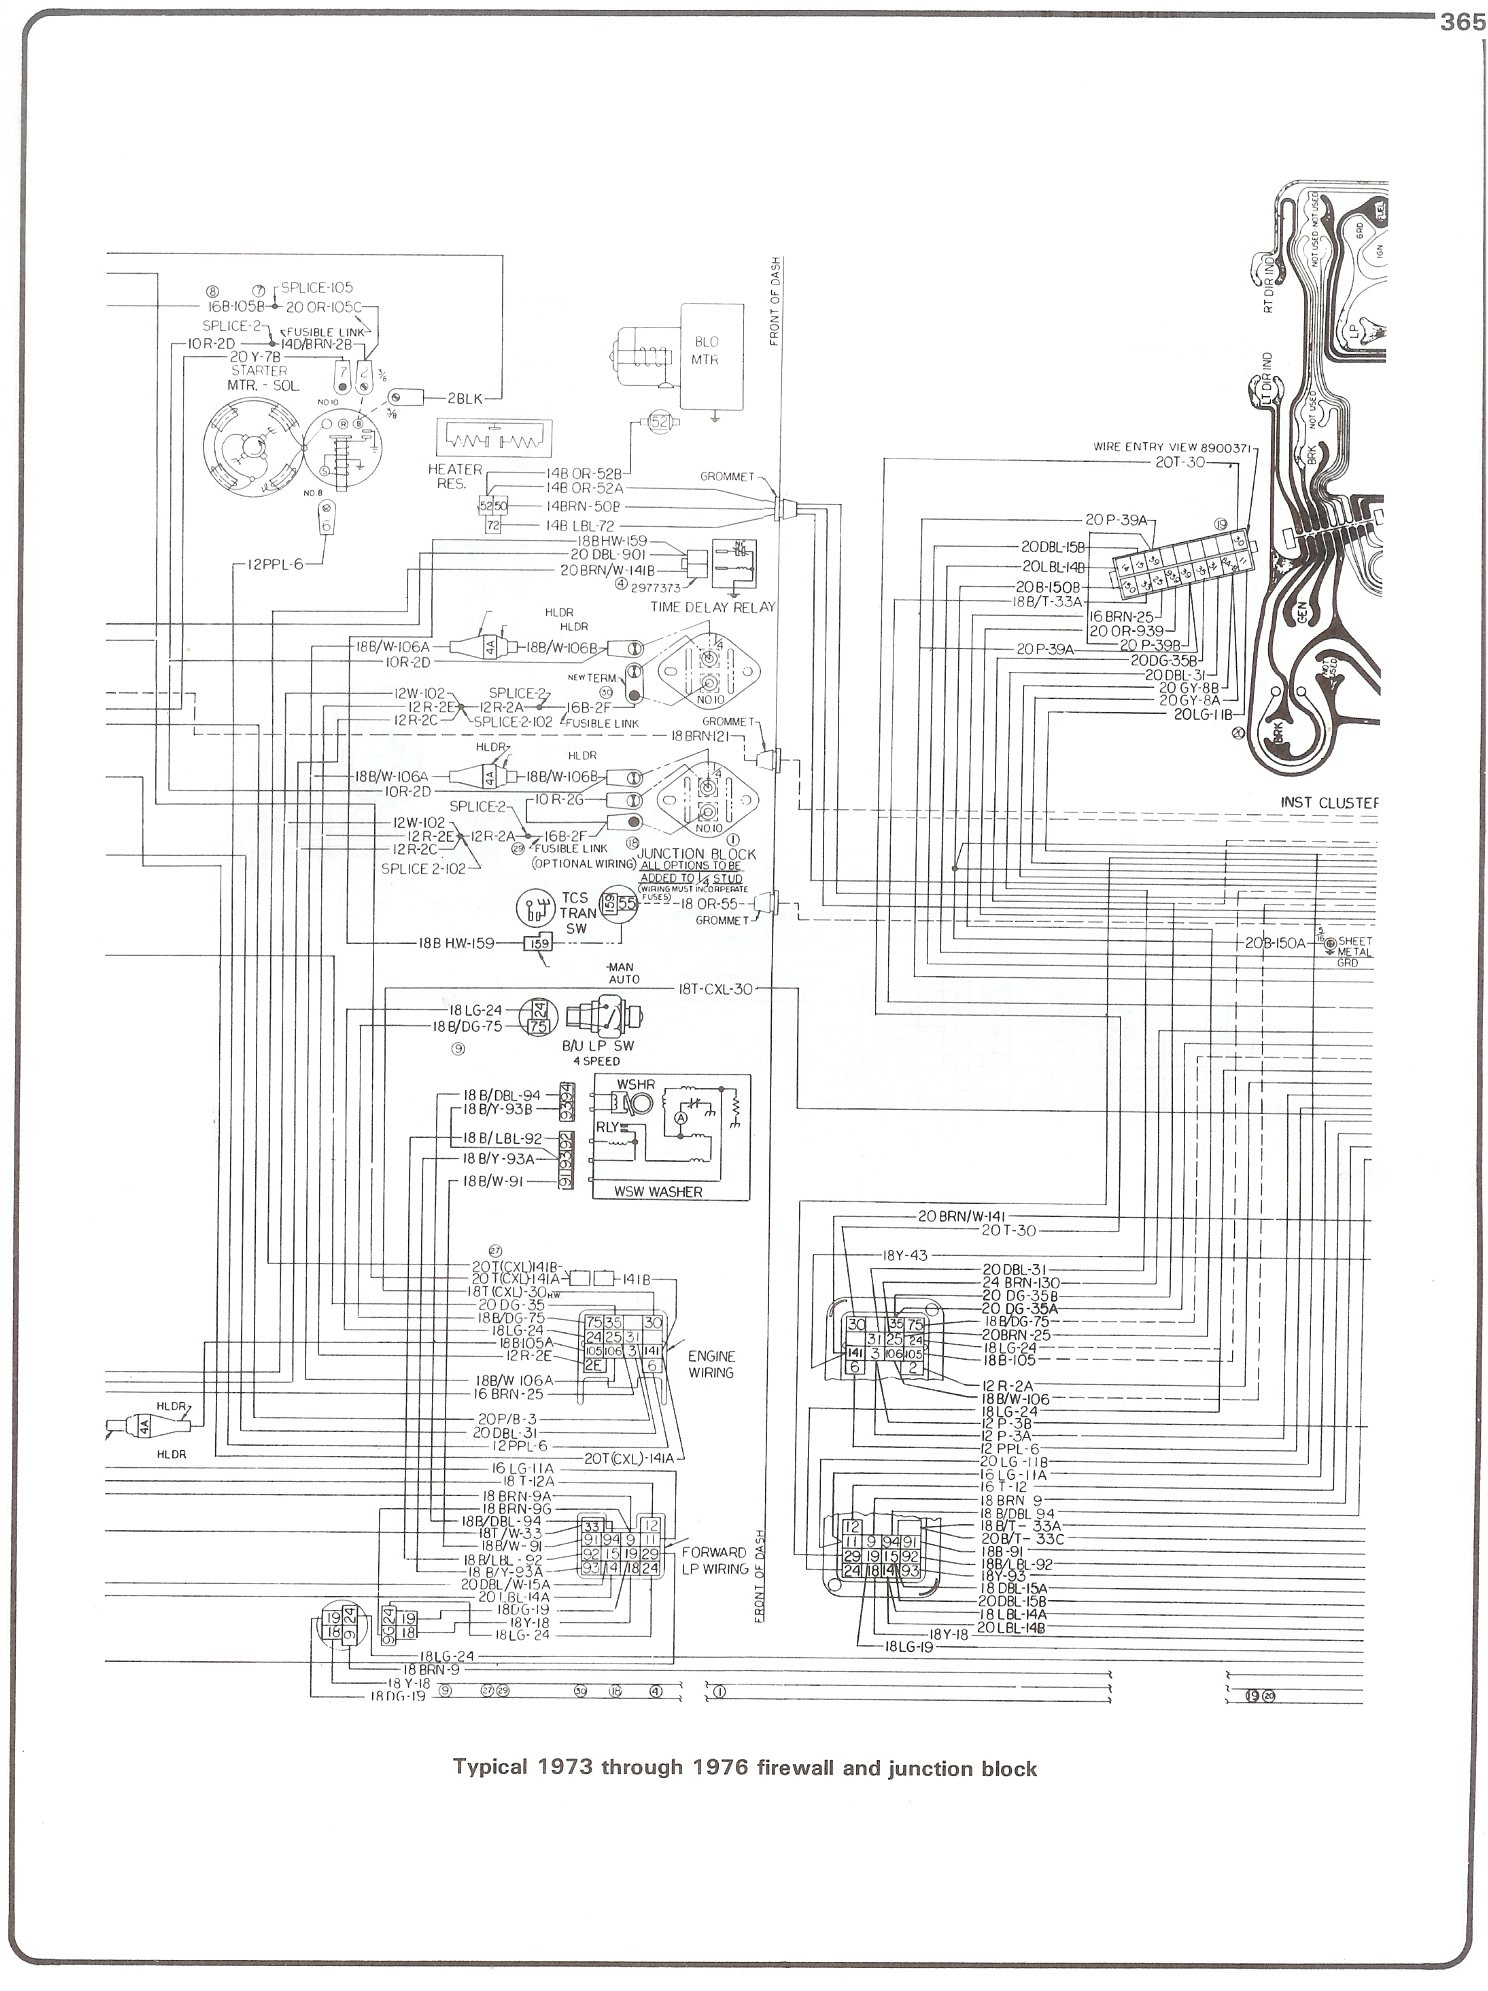 Complete 73 87 Wiring Diagrams Ambulance Diagram 76 Firewall Junction